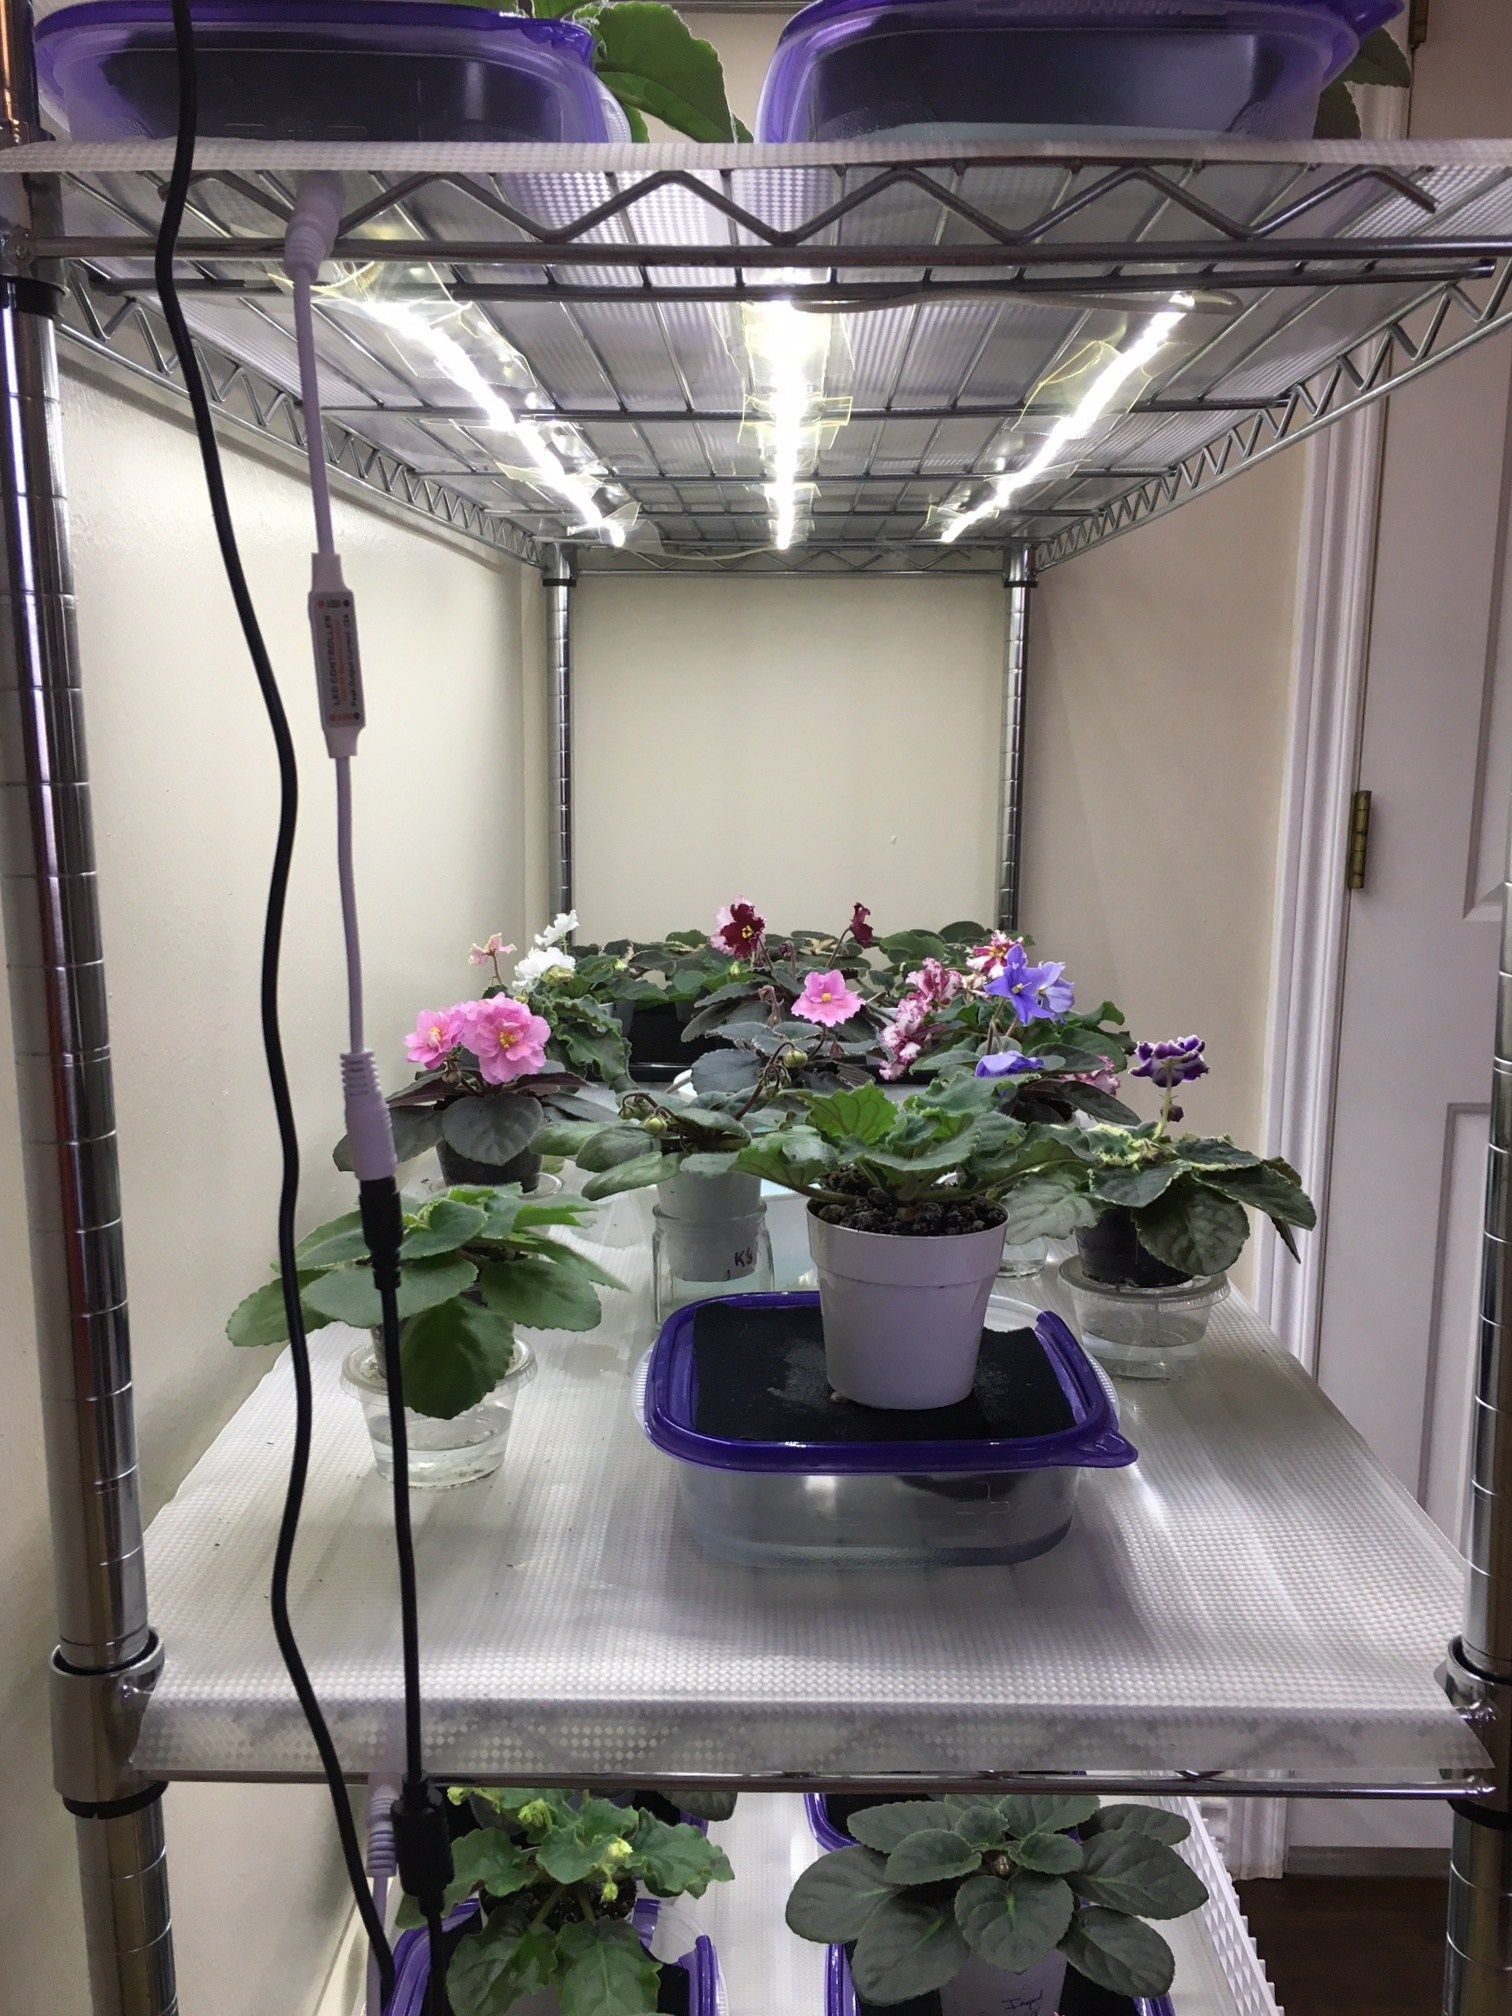 How To Grow Plants With Led Lights African Violet Light Stand Grow Lights For Plants Diy Plant Stand Indoor Grow Lights